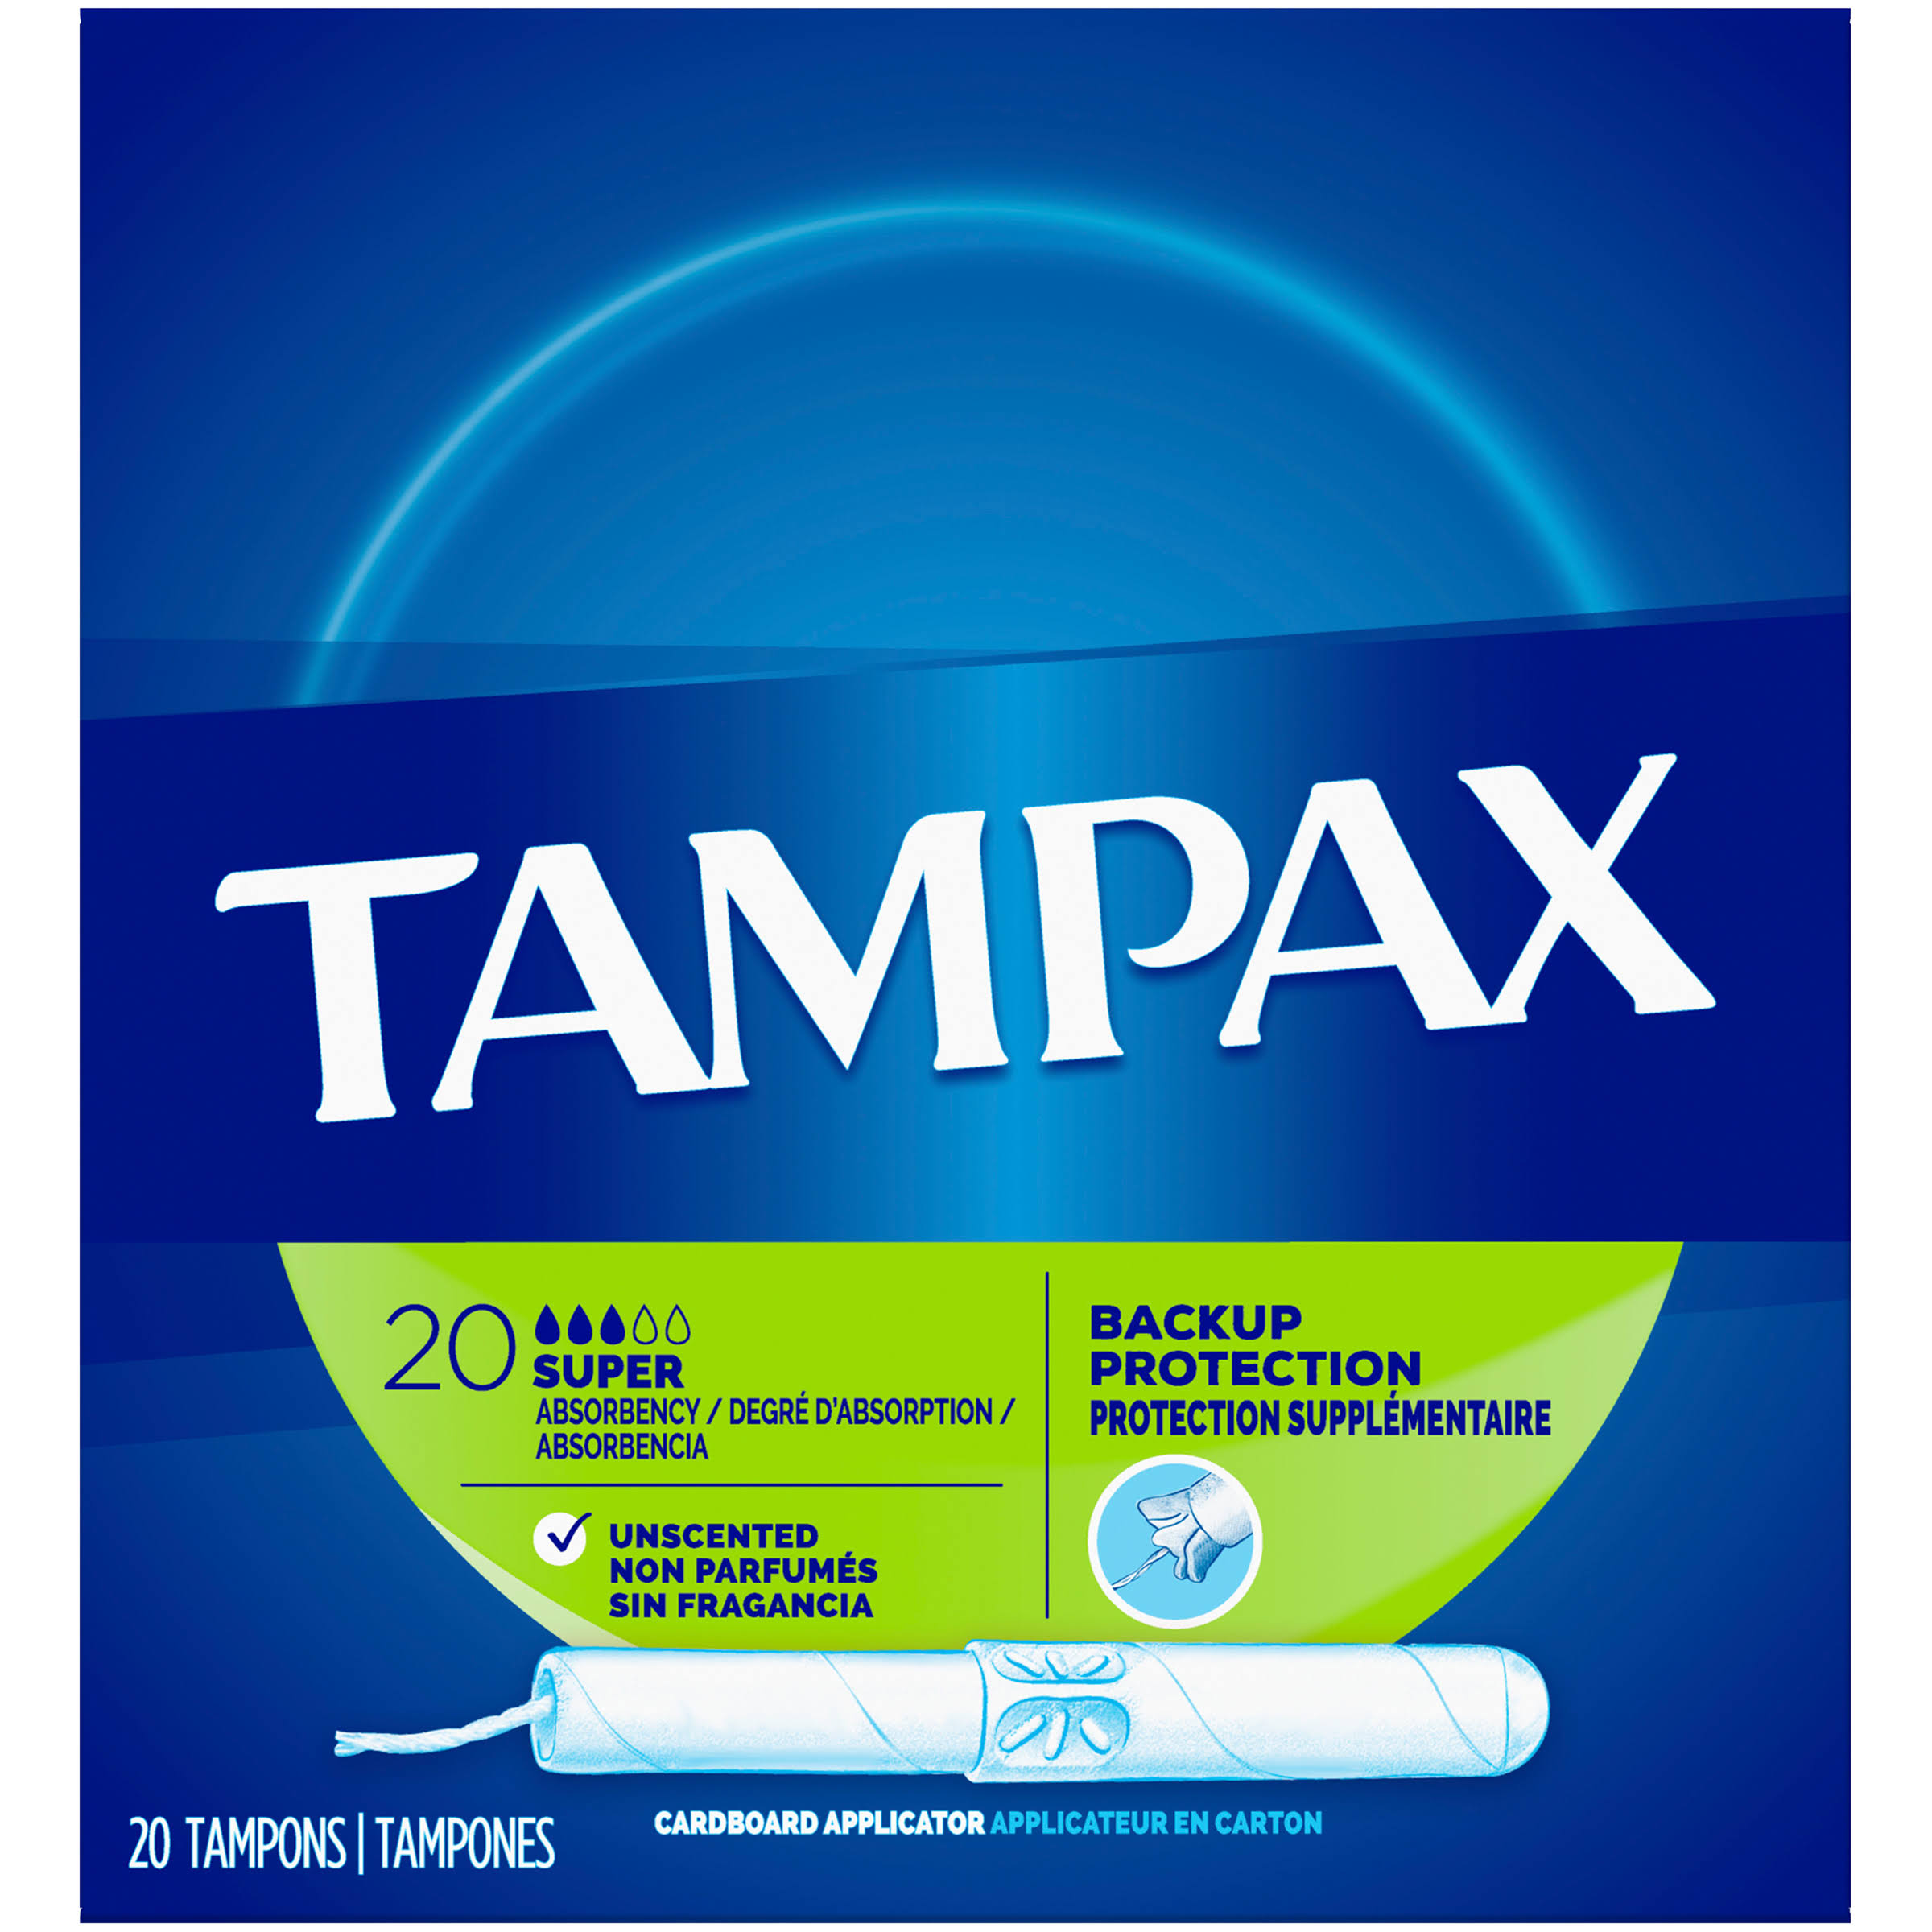 Tampax Anti-Slip Grip Tampons - Cardboard Applicator, Super Absorbency, 20pk